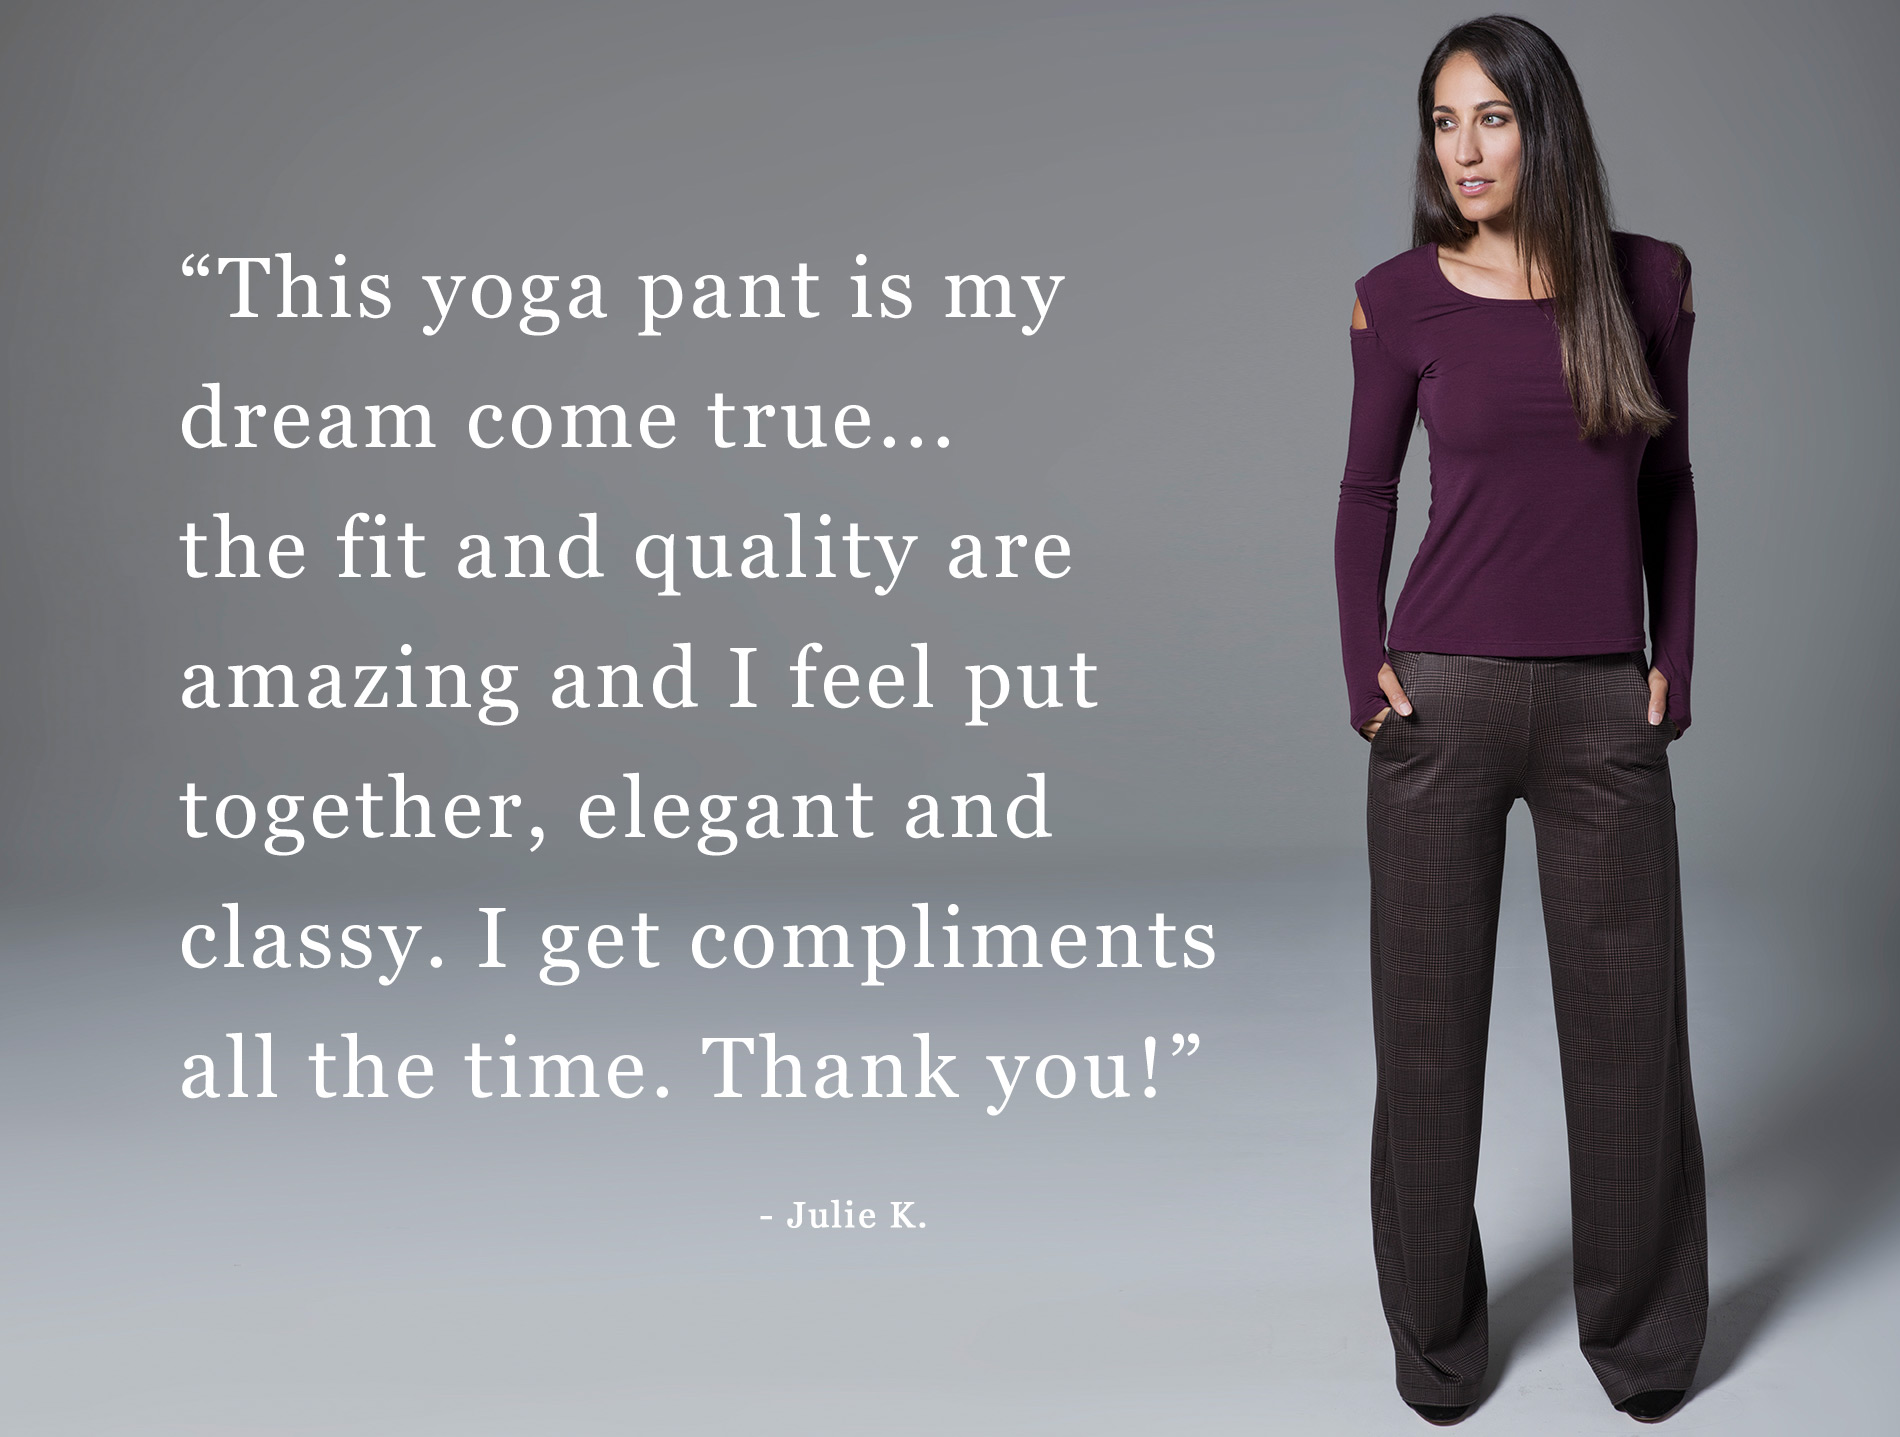 wide-leg-pant-quote.jpg